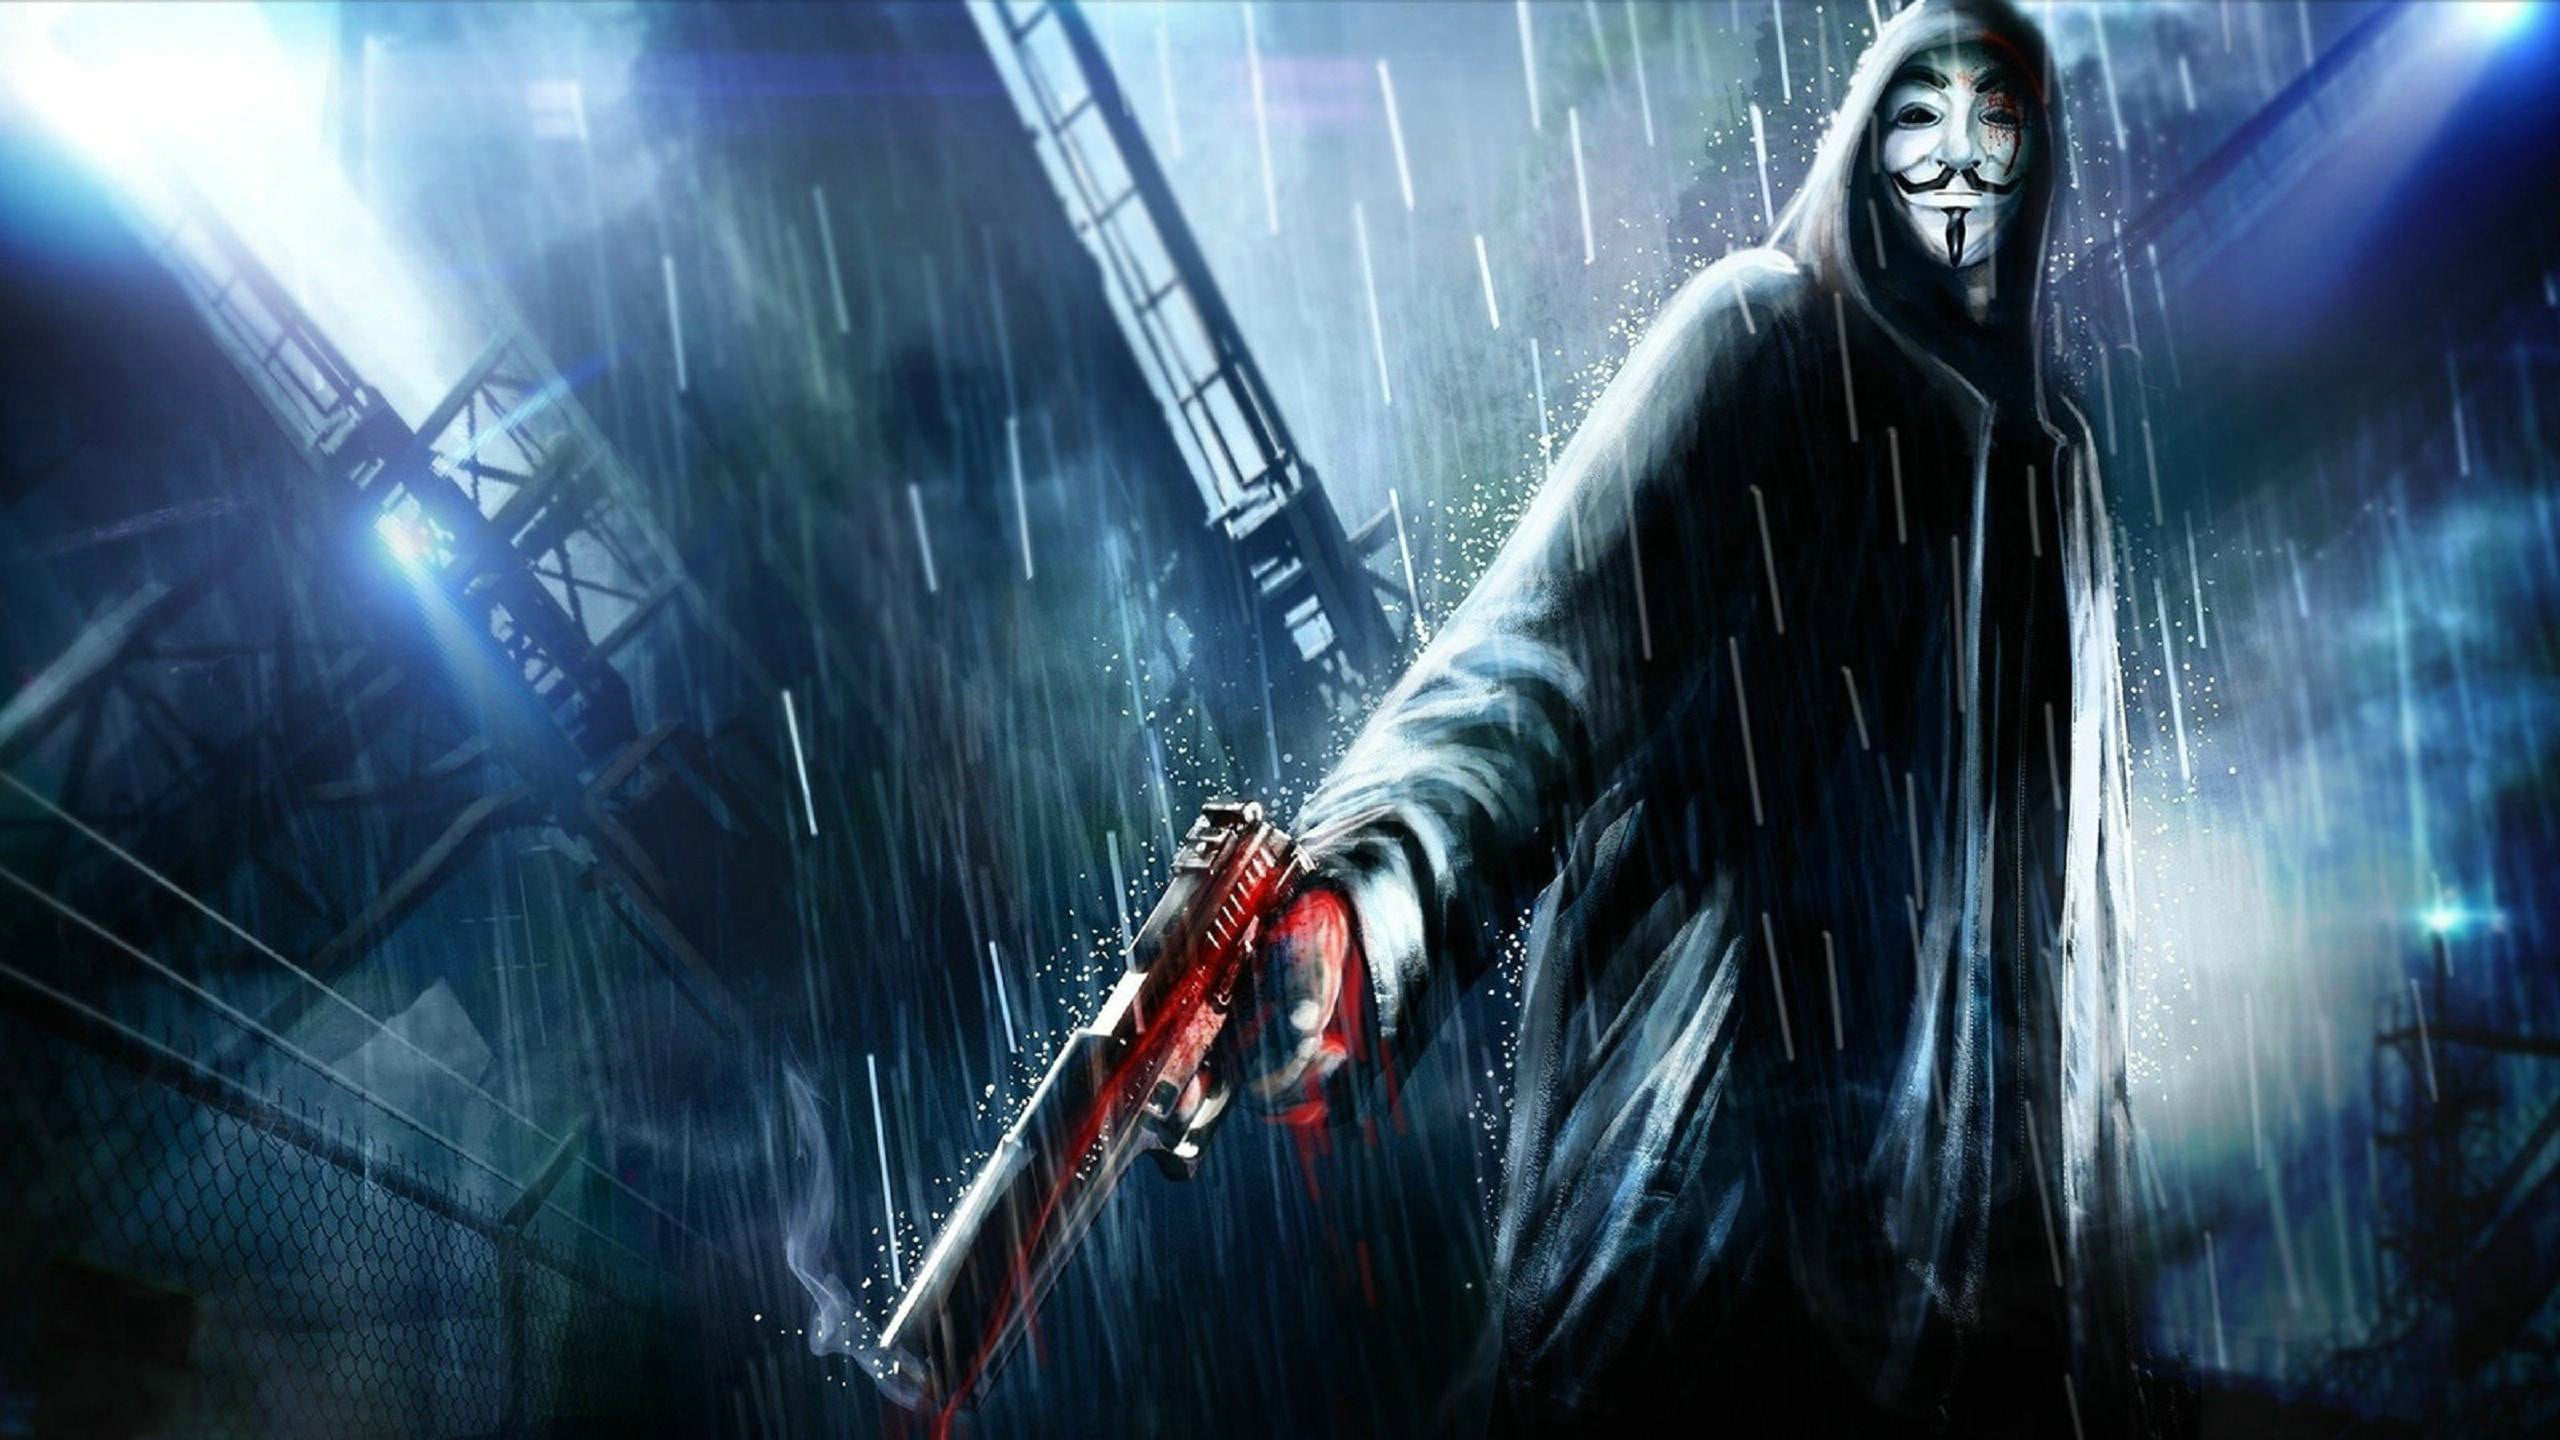 Anonymous Hacker Background Kolpaper Awesome Free Hd Wallpapers